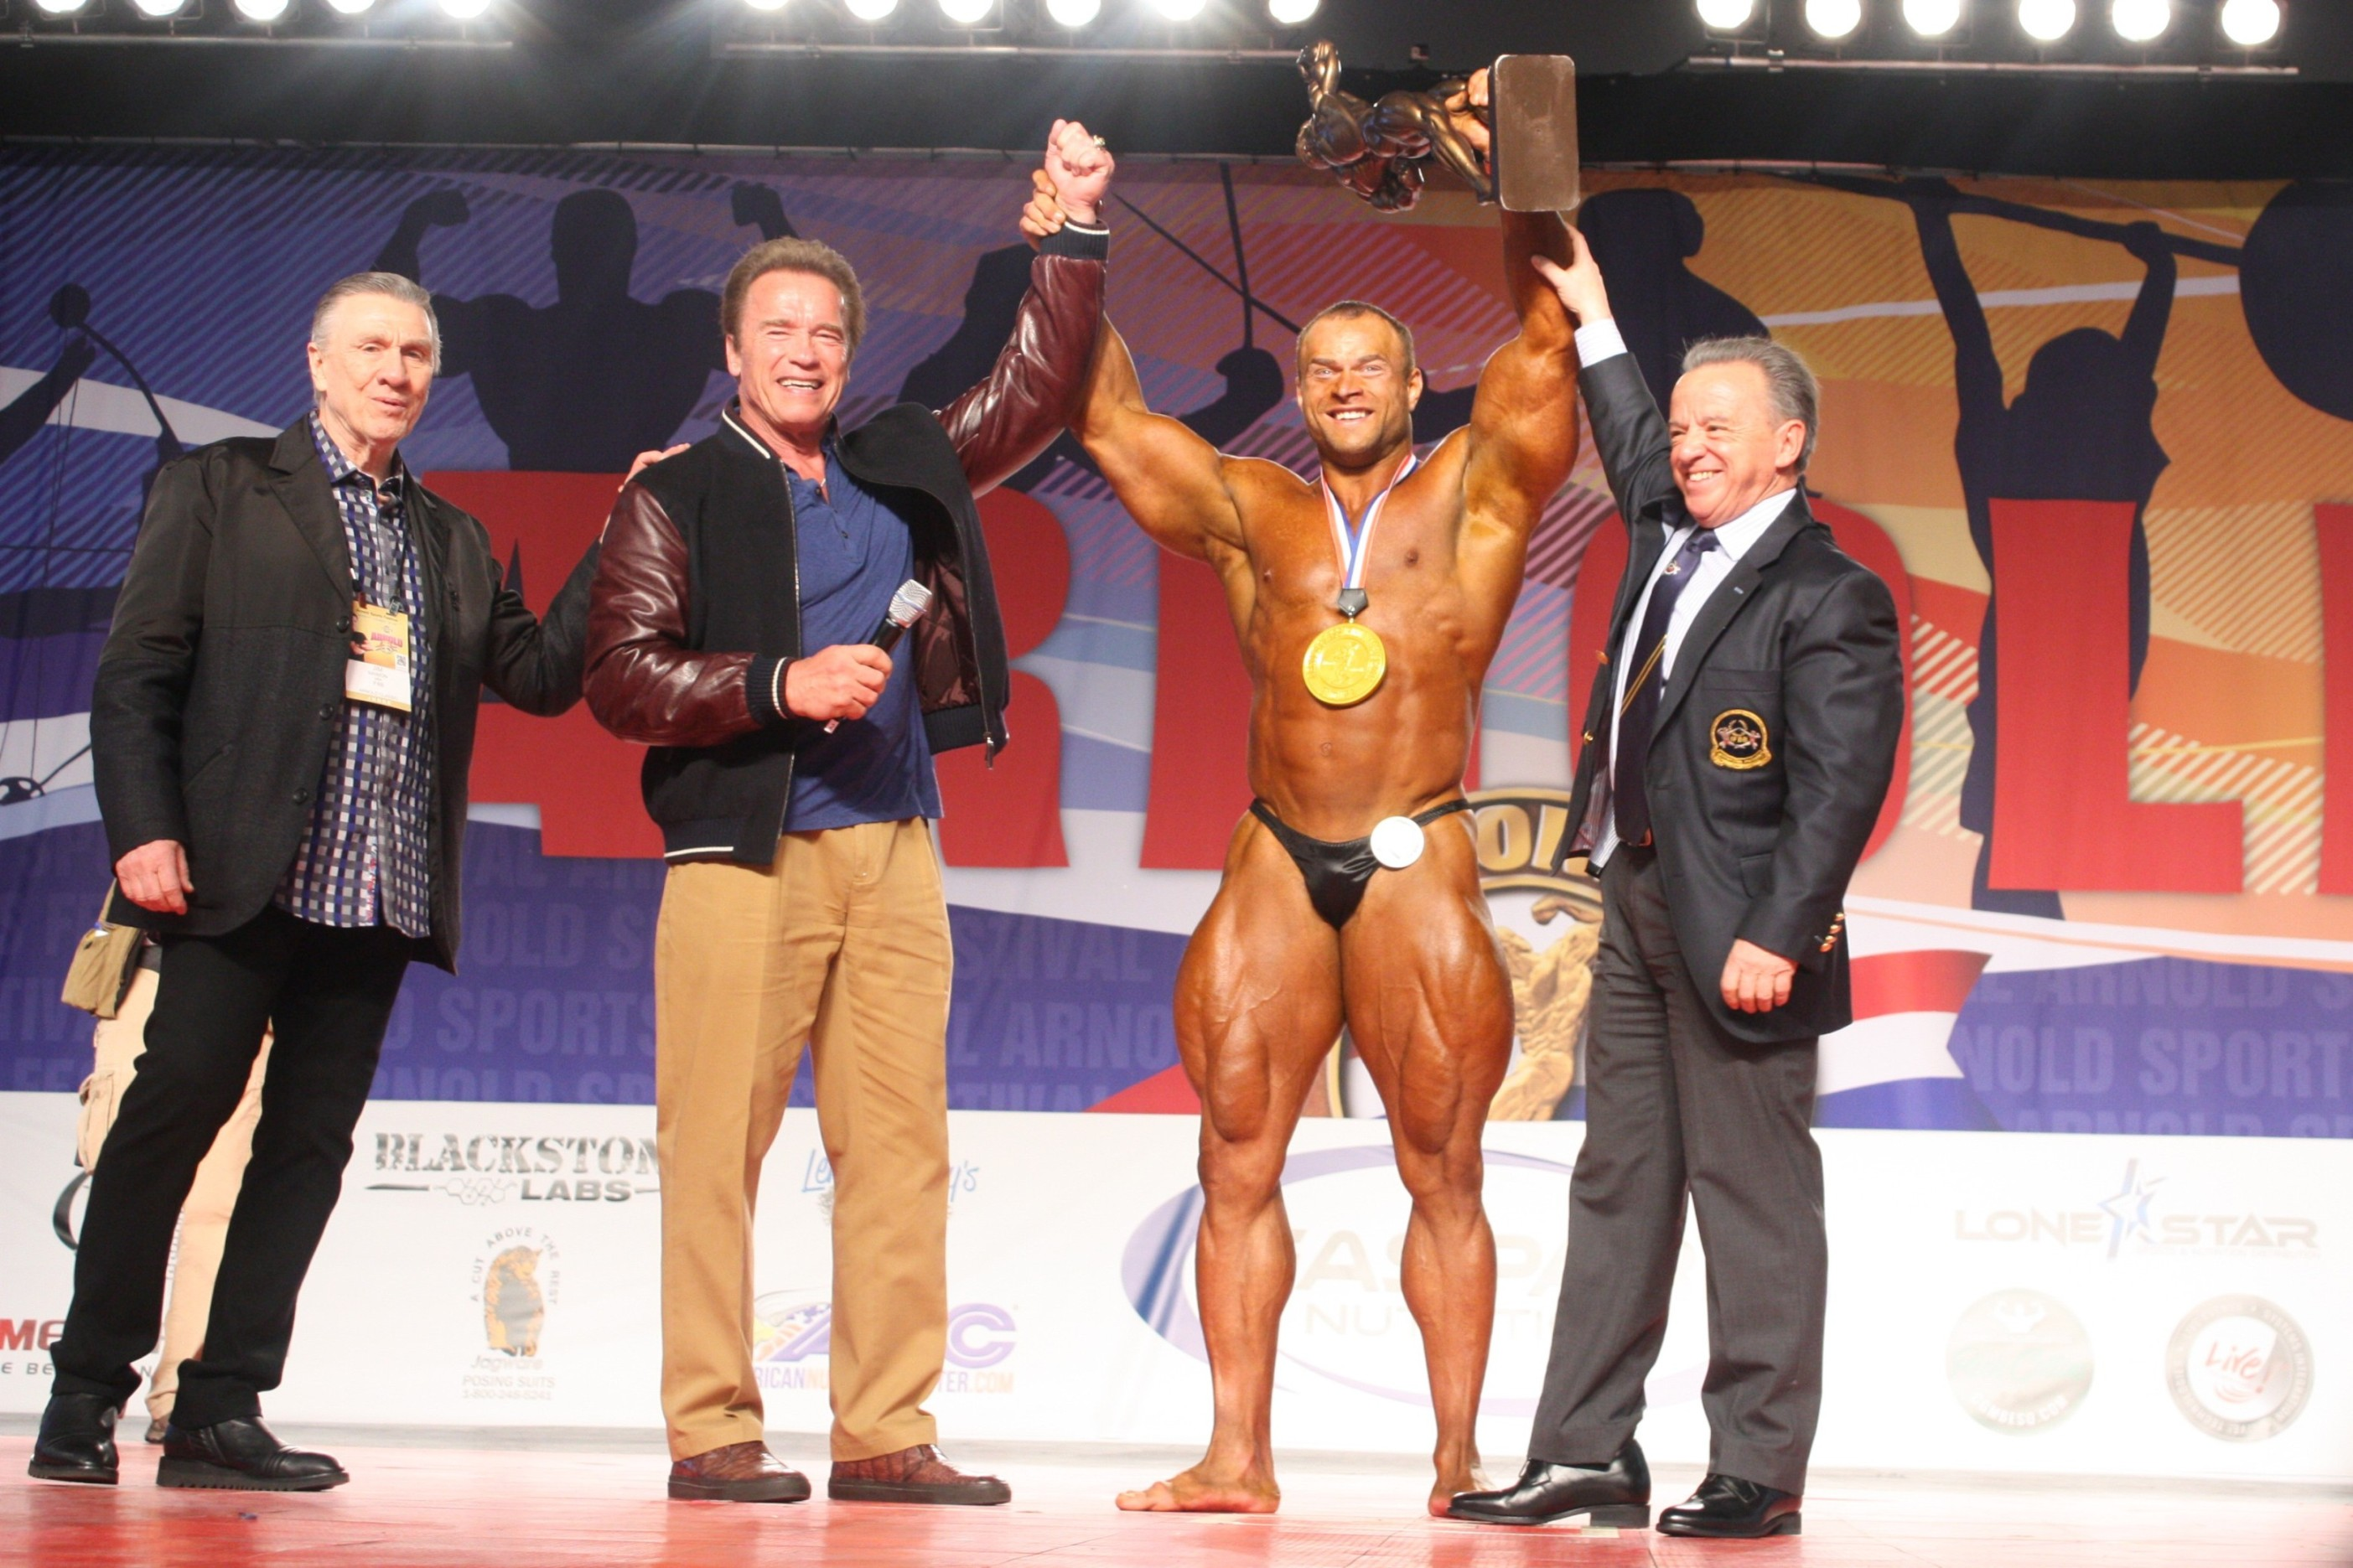 Men's Bodybuilding Overall Winner left to right Jim Manion, Arnold Schwarzenegger, Sergey Kulaev of Russia, Dr Rafael Santonja